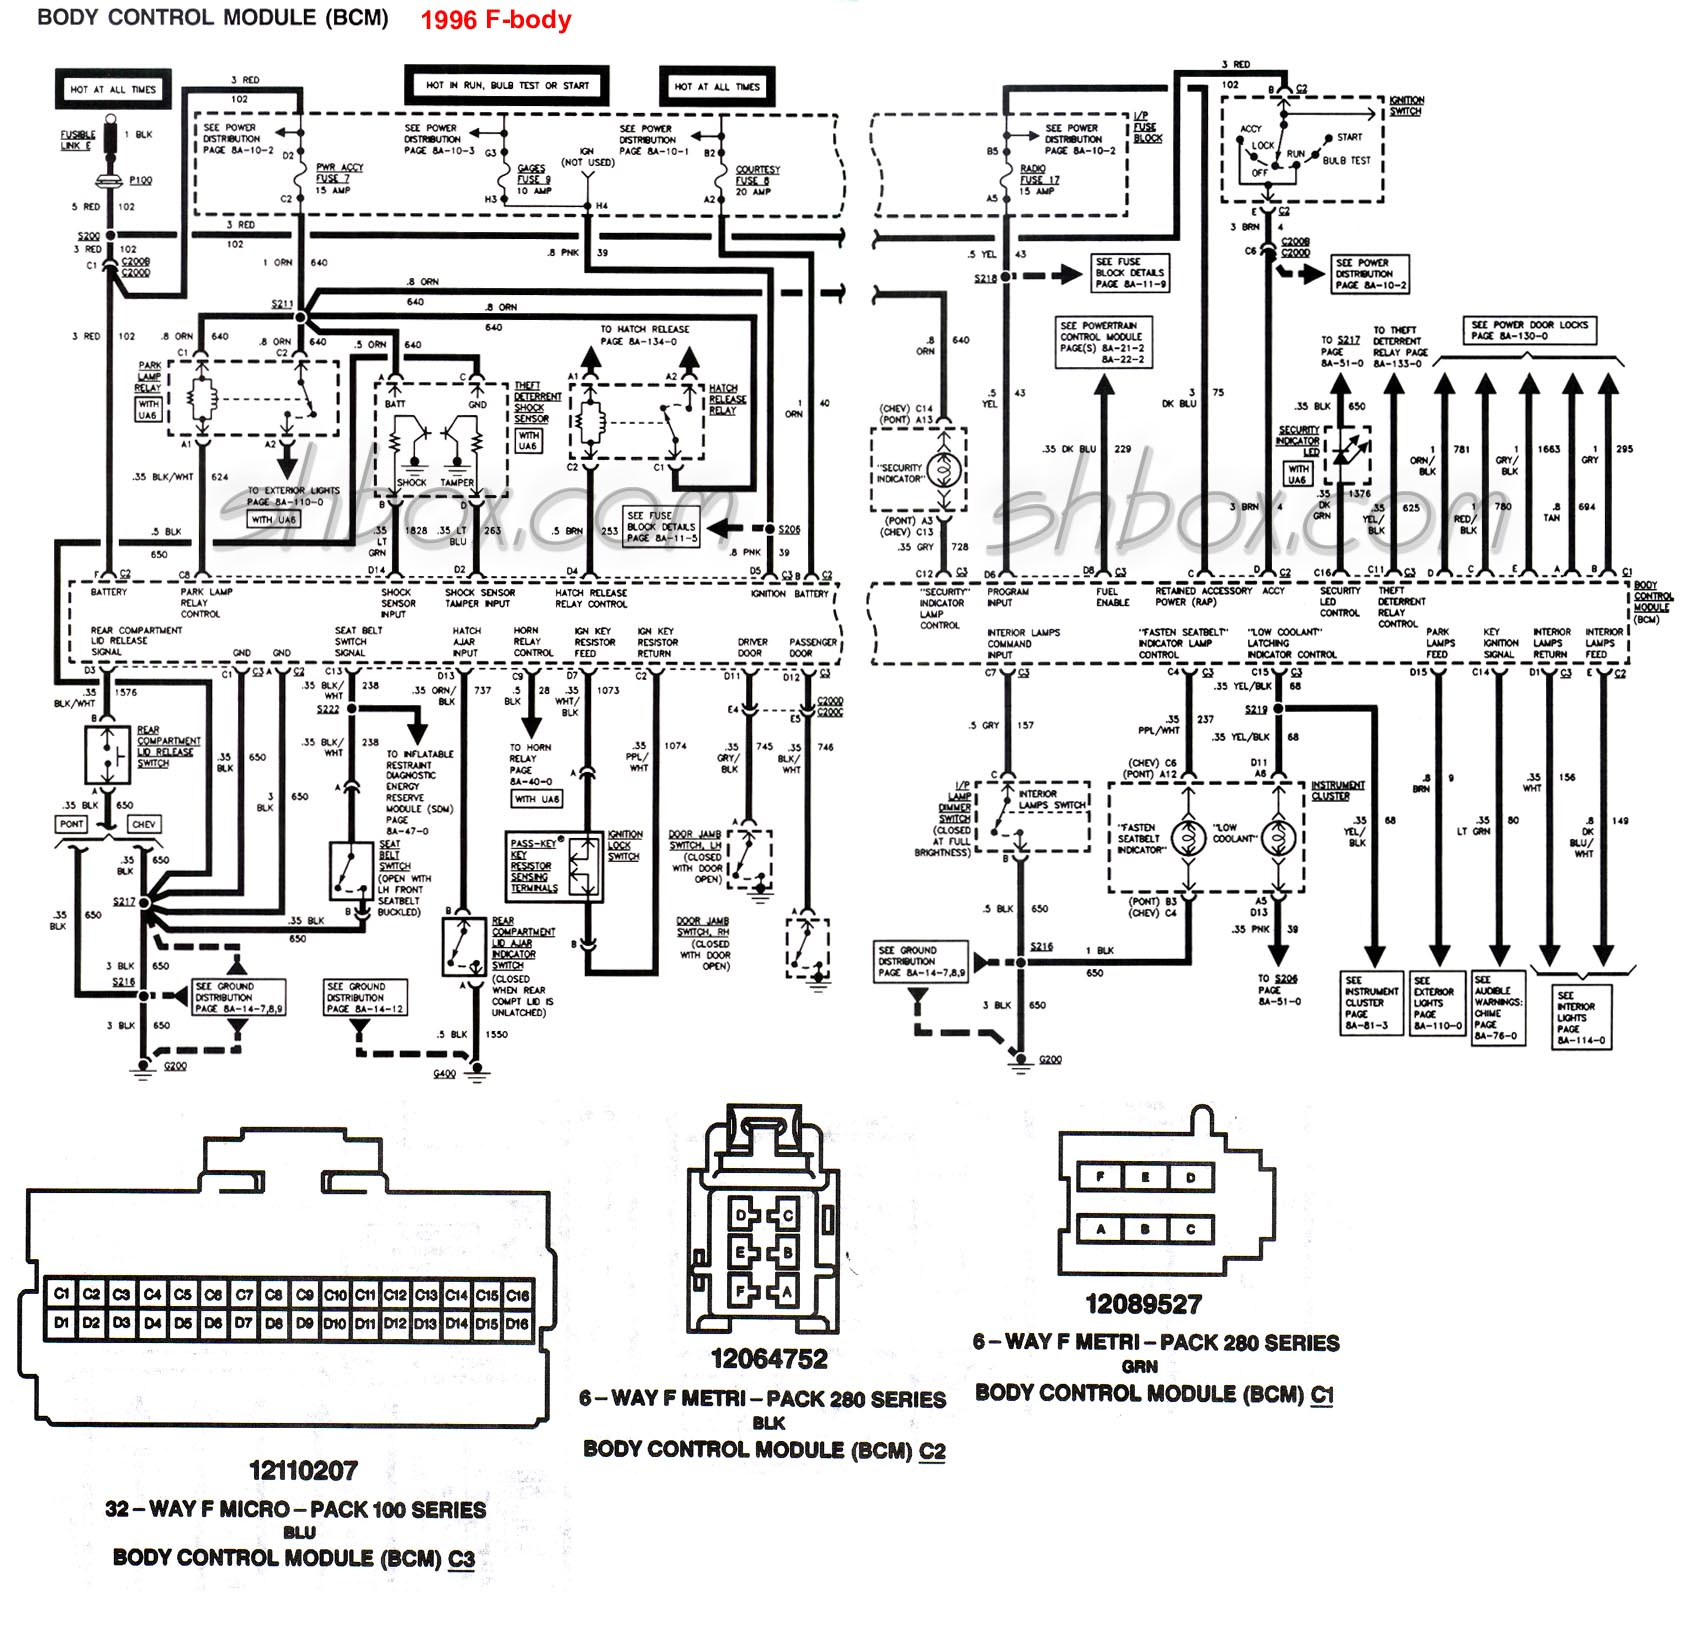 chevy colorado bcm wiring diagram get free image about 1994 lt1 wiring  harness 94 lt1 wiring